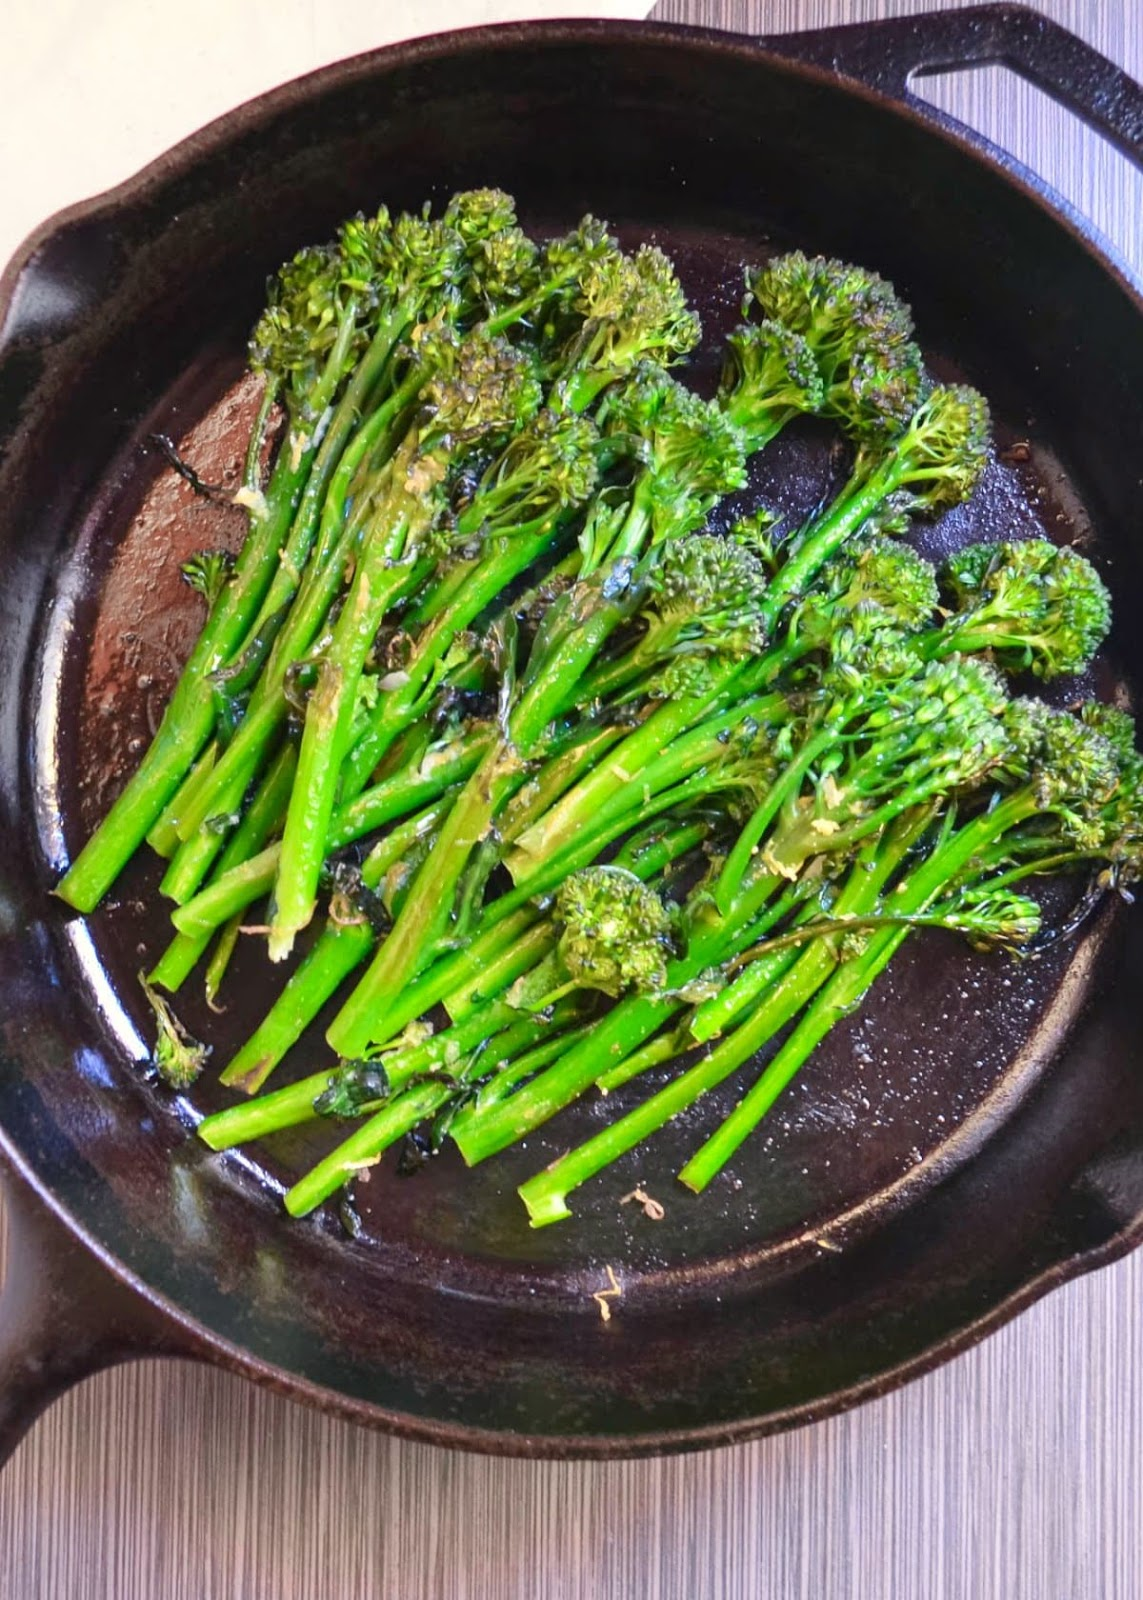 Broccolini is a favorite quick side dish recipe that's oven roasted with garlic and lemon for a delicious flavor from Serena Bakes Simply From Scratch.